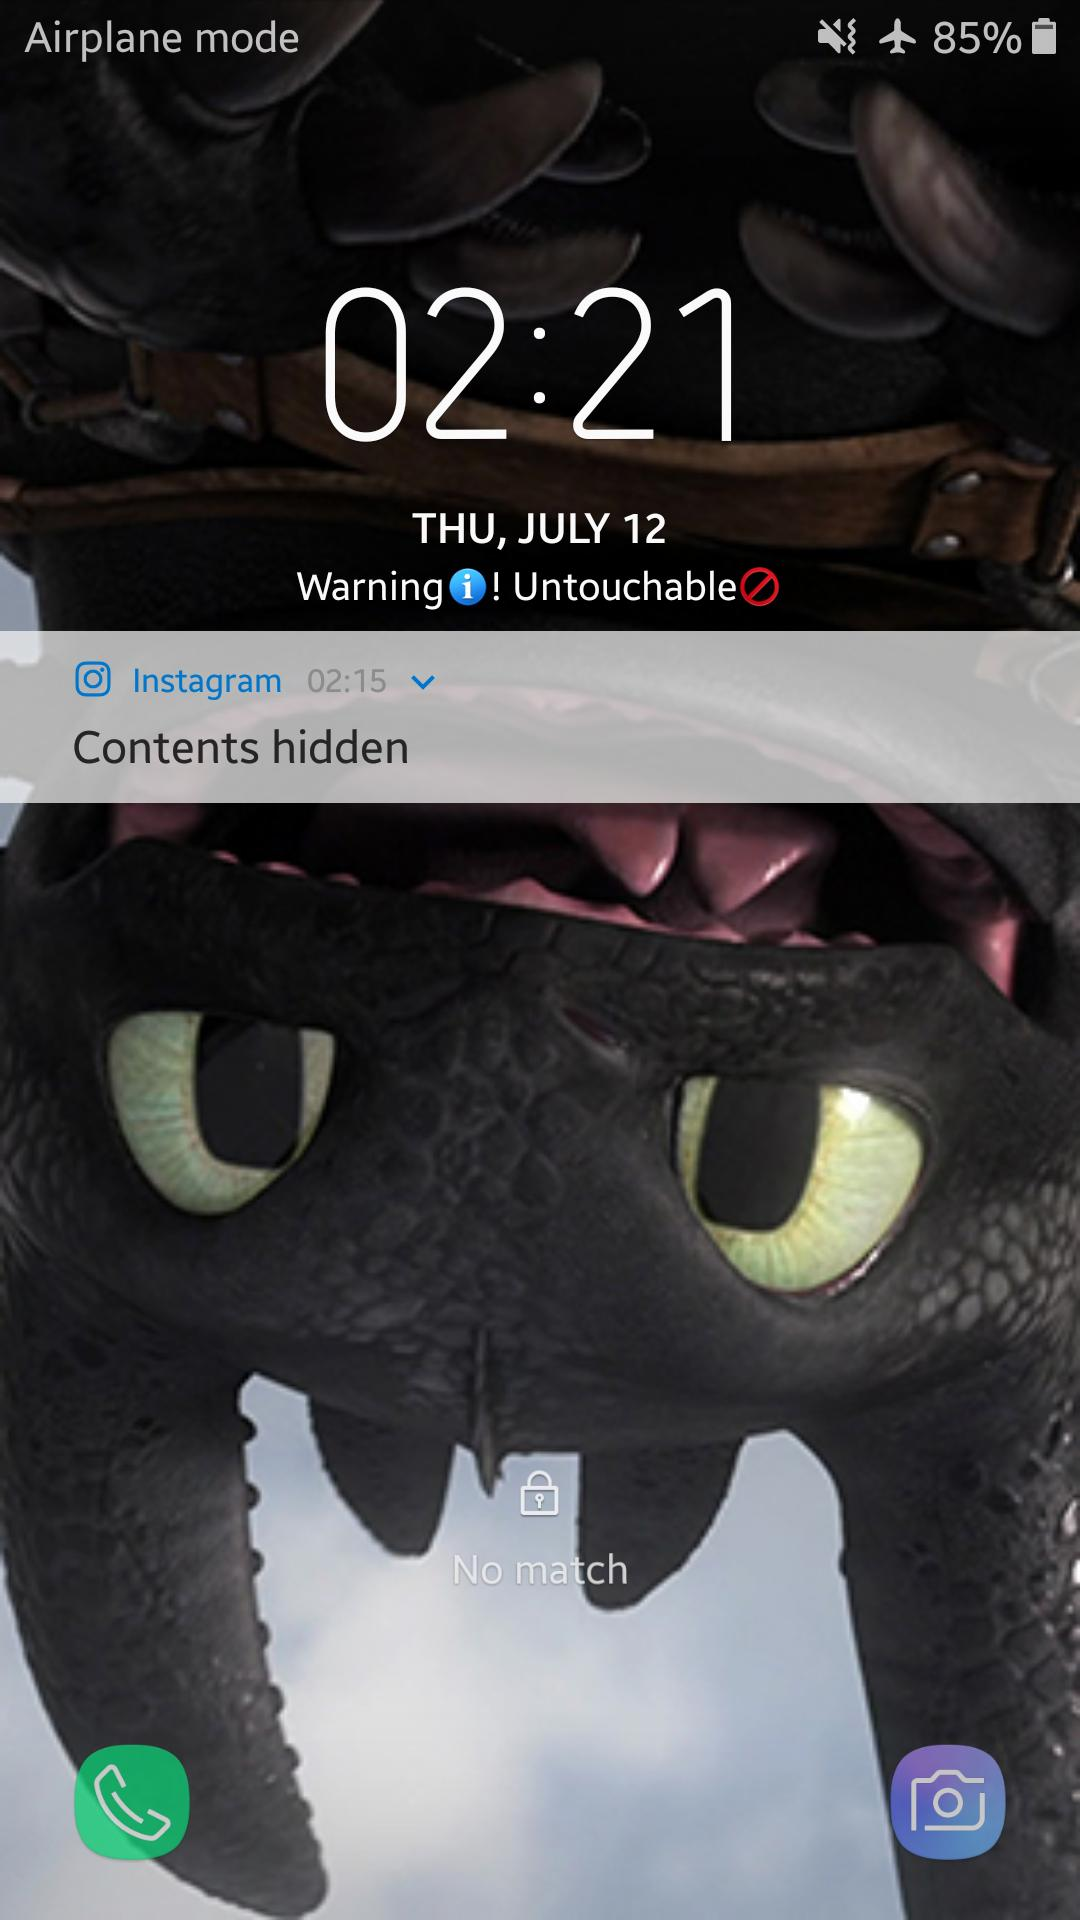 How To Train Your Dragon 3 Wallpapers Hd For Android Apk Download